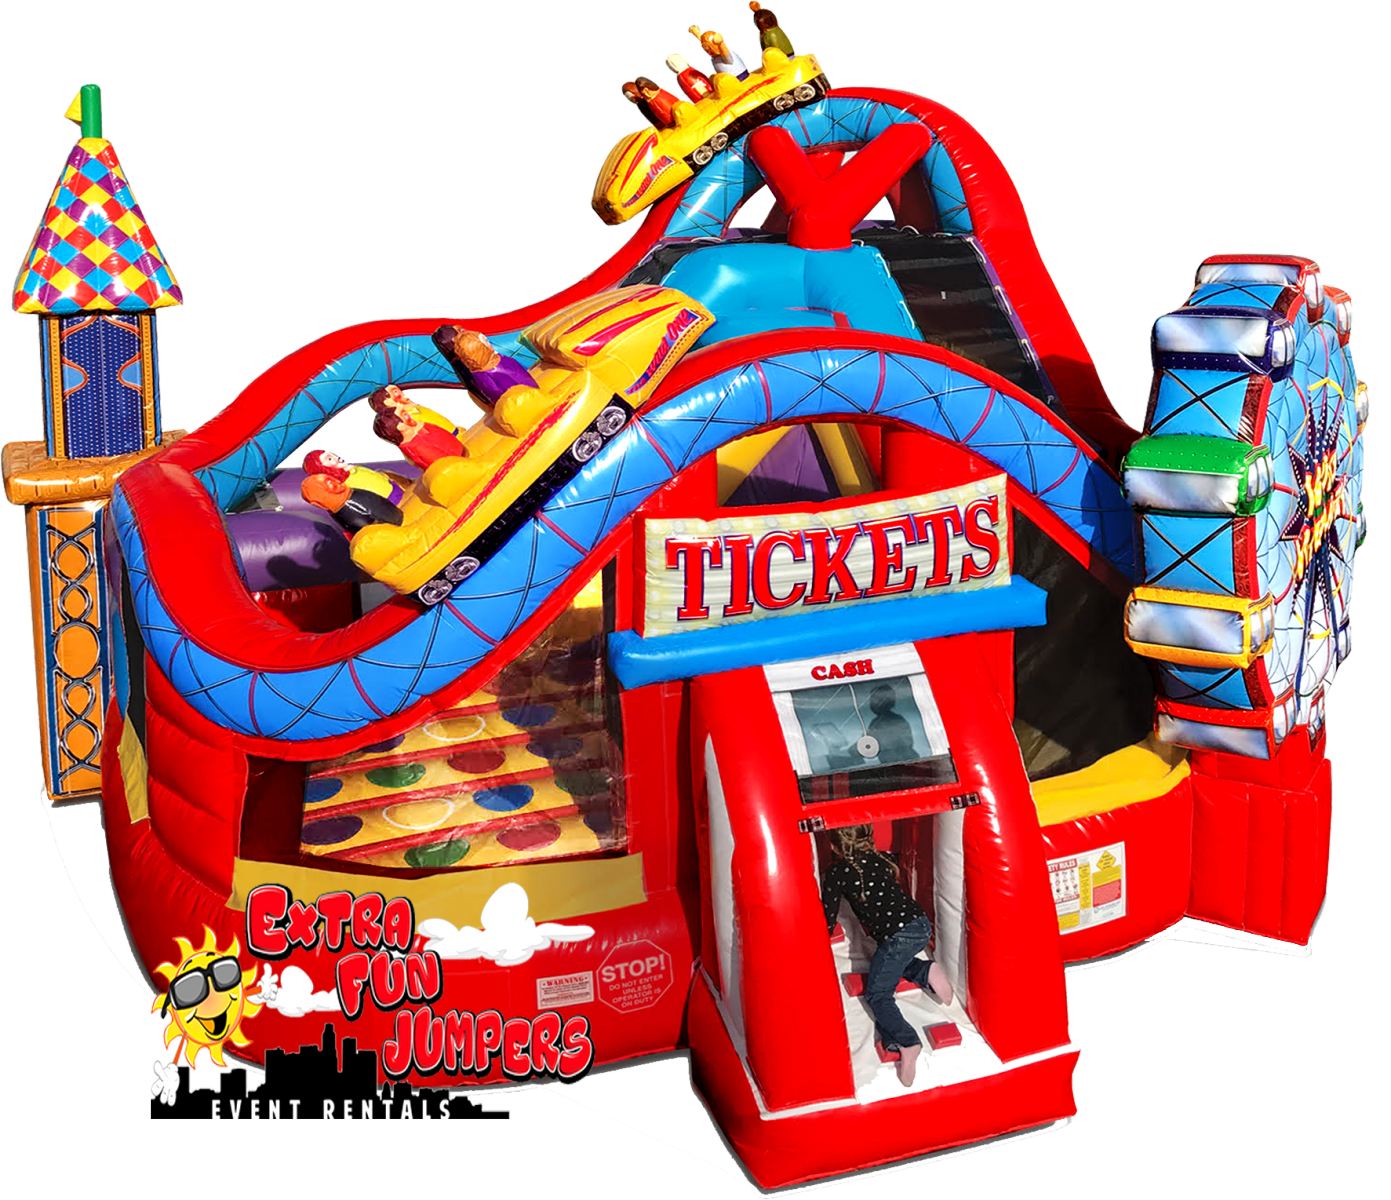 14 cliparts for free. Download Booth clipart kids carnival games and.